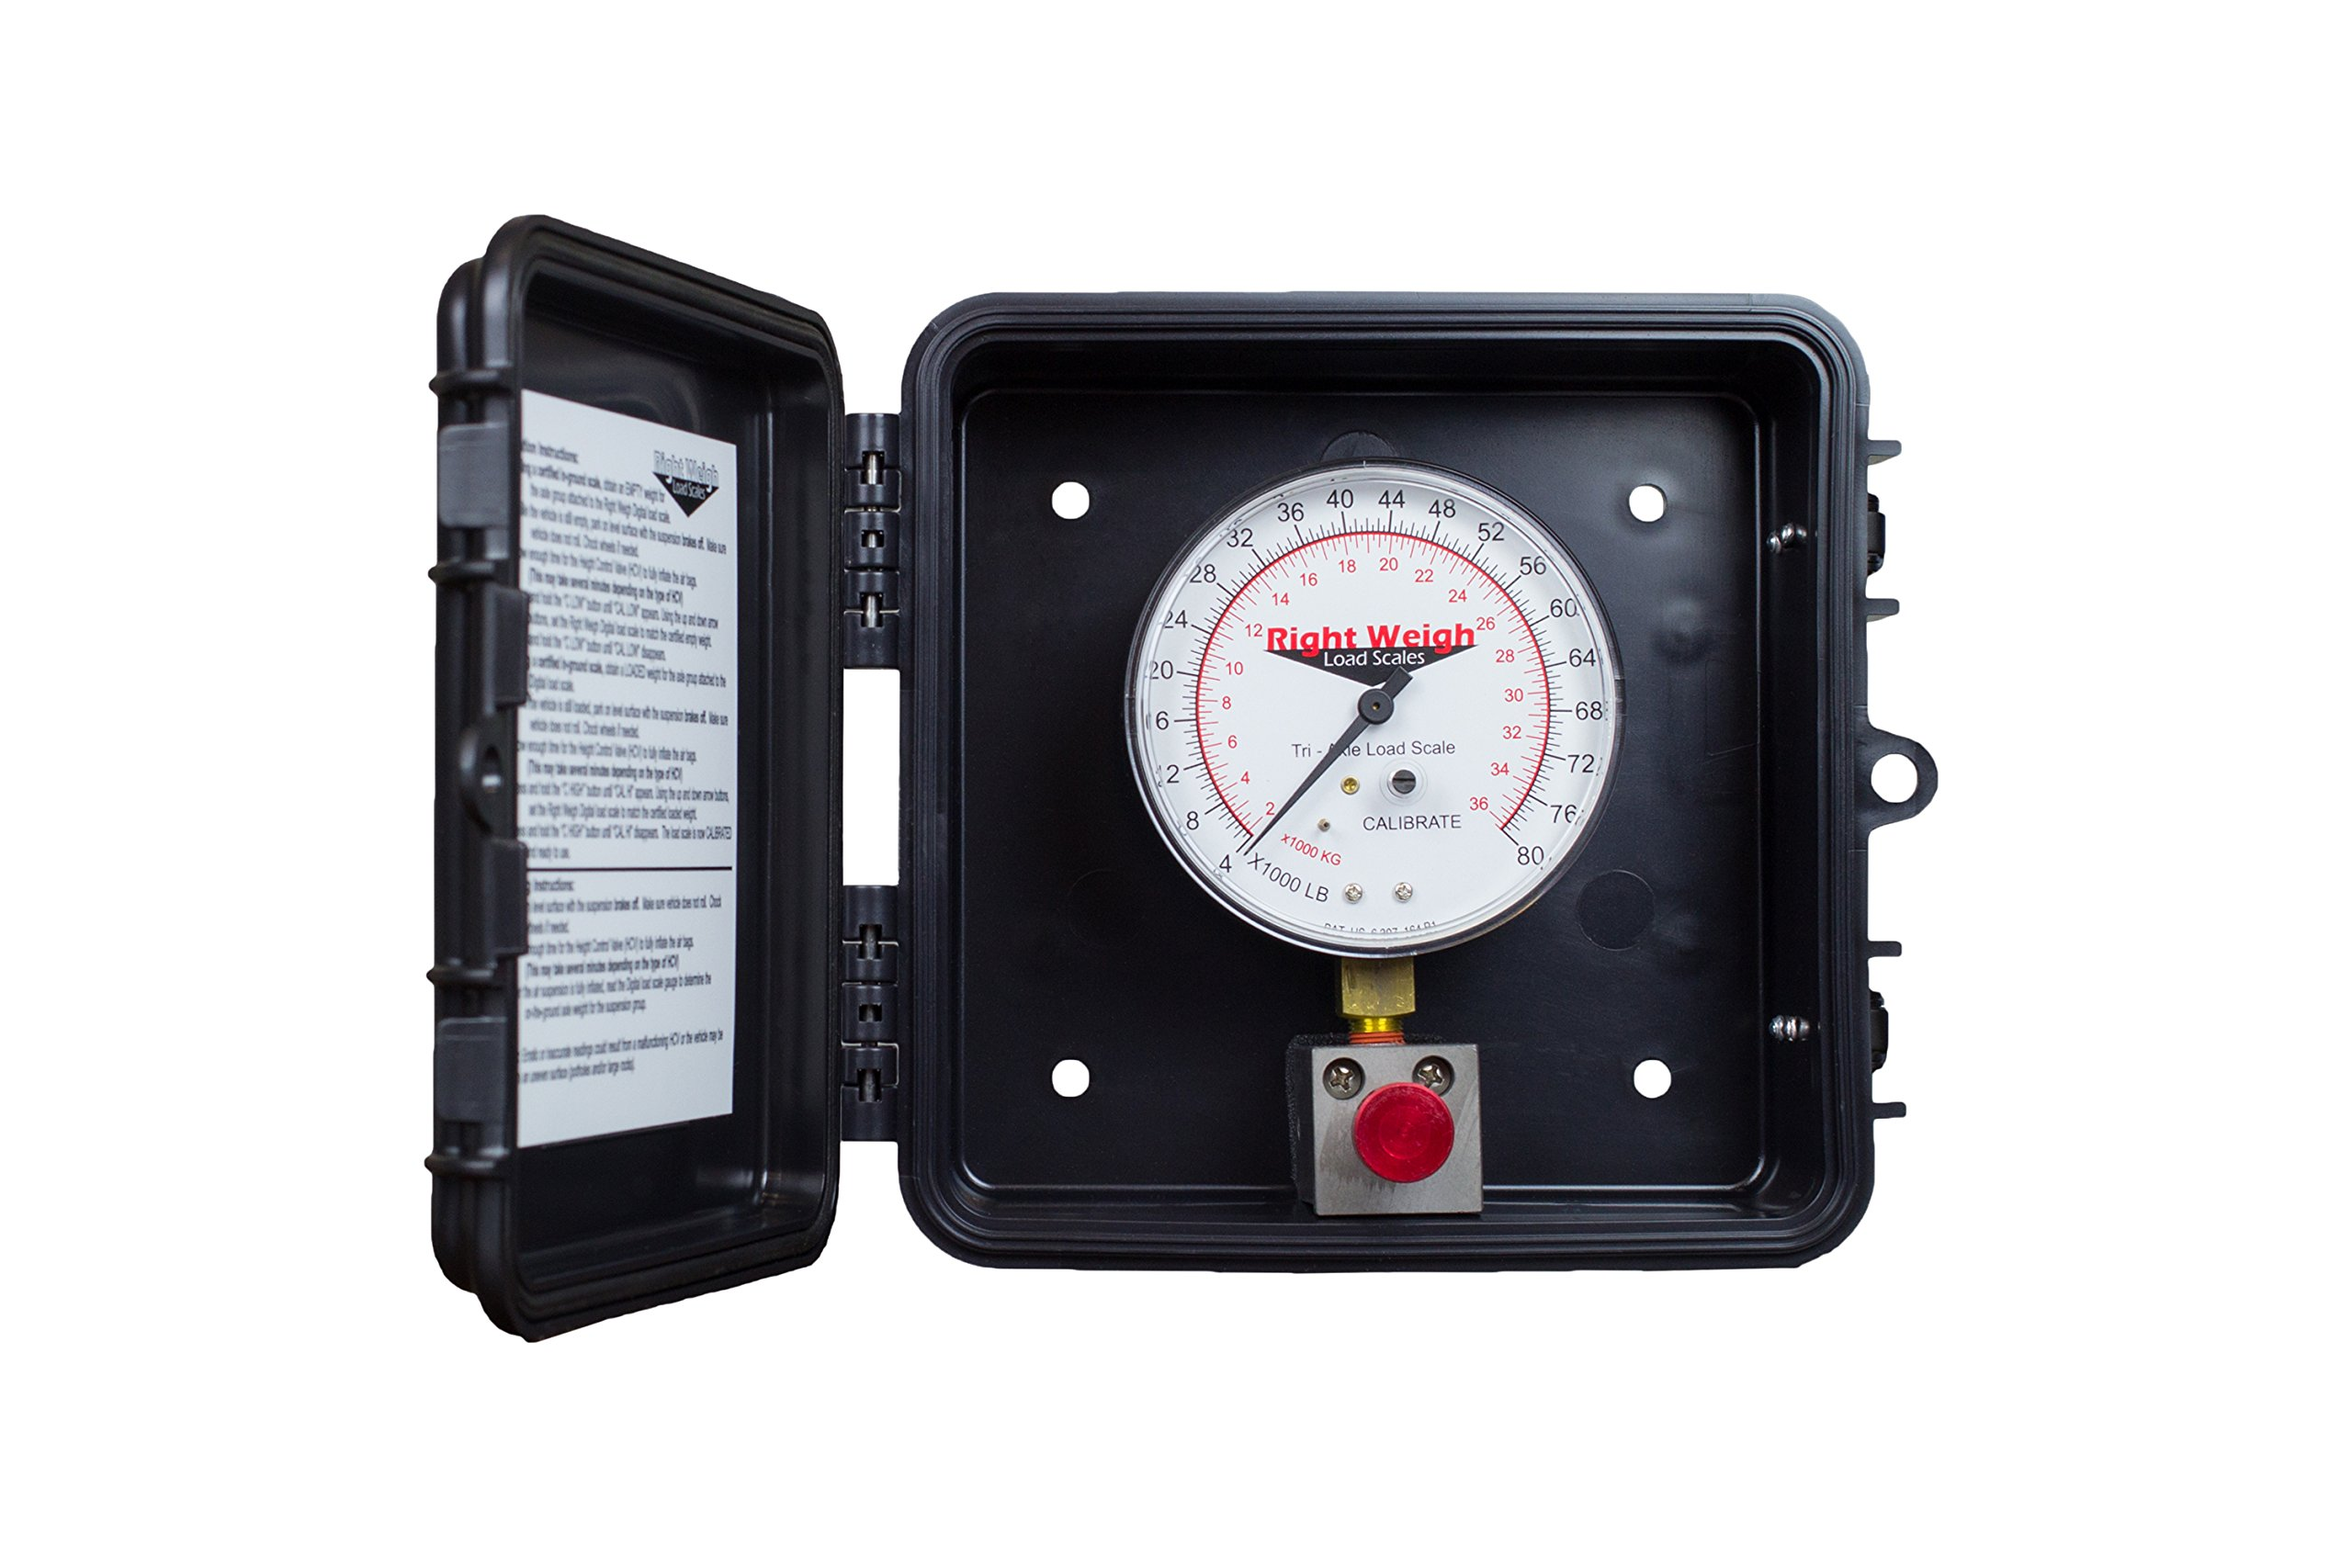 310-80-M3 Tri-Axle Exterior Analog Load Scale - for Dual Height Control Valve Air Suspensions